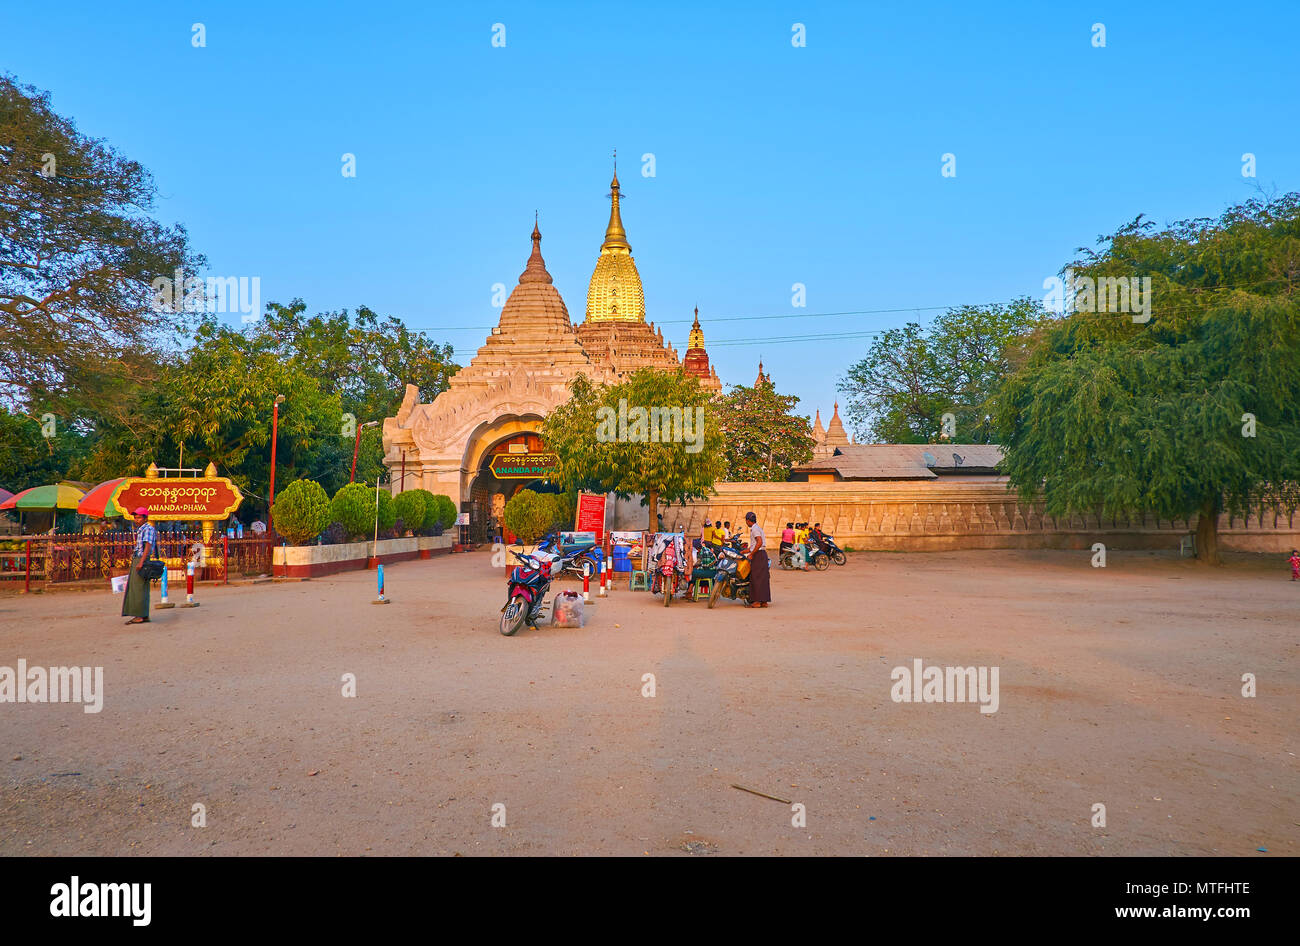 The dusty square in front of the entrance gates to the Ananda Temple is the place of the day market, Bagan, Myanmar - Stock Image